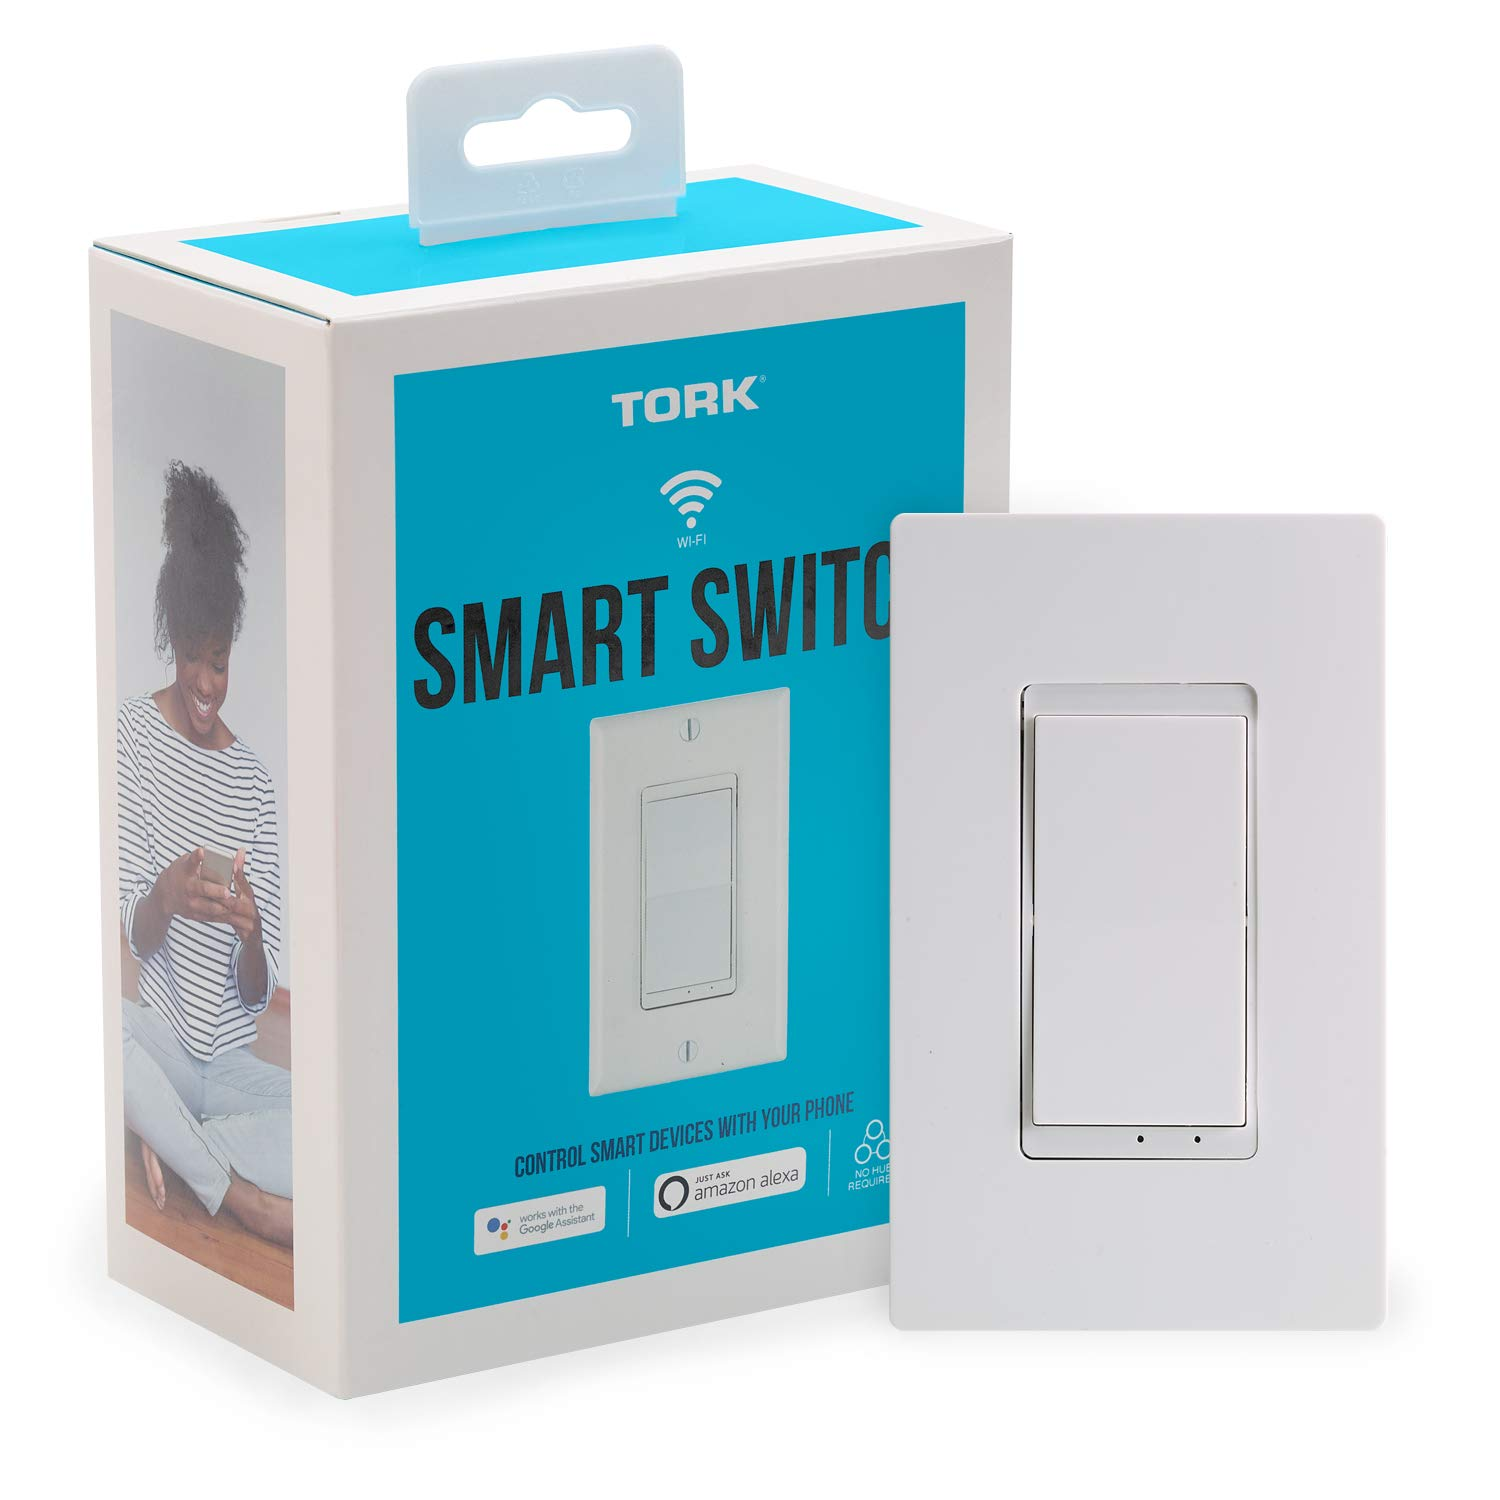 NSi Industries TORK WFIH1 Smart Switch - Indoor Standard Wi-Fi in-Wall Switch - Compatible with Alexa and Google Assistant - Remote Control/Access with Smartphone/Tablet App - No Hub Required